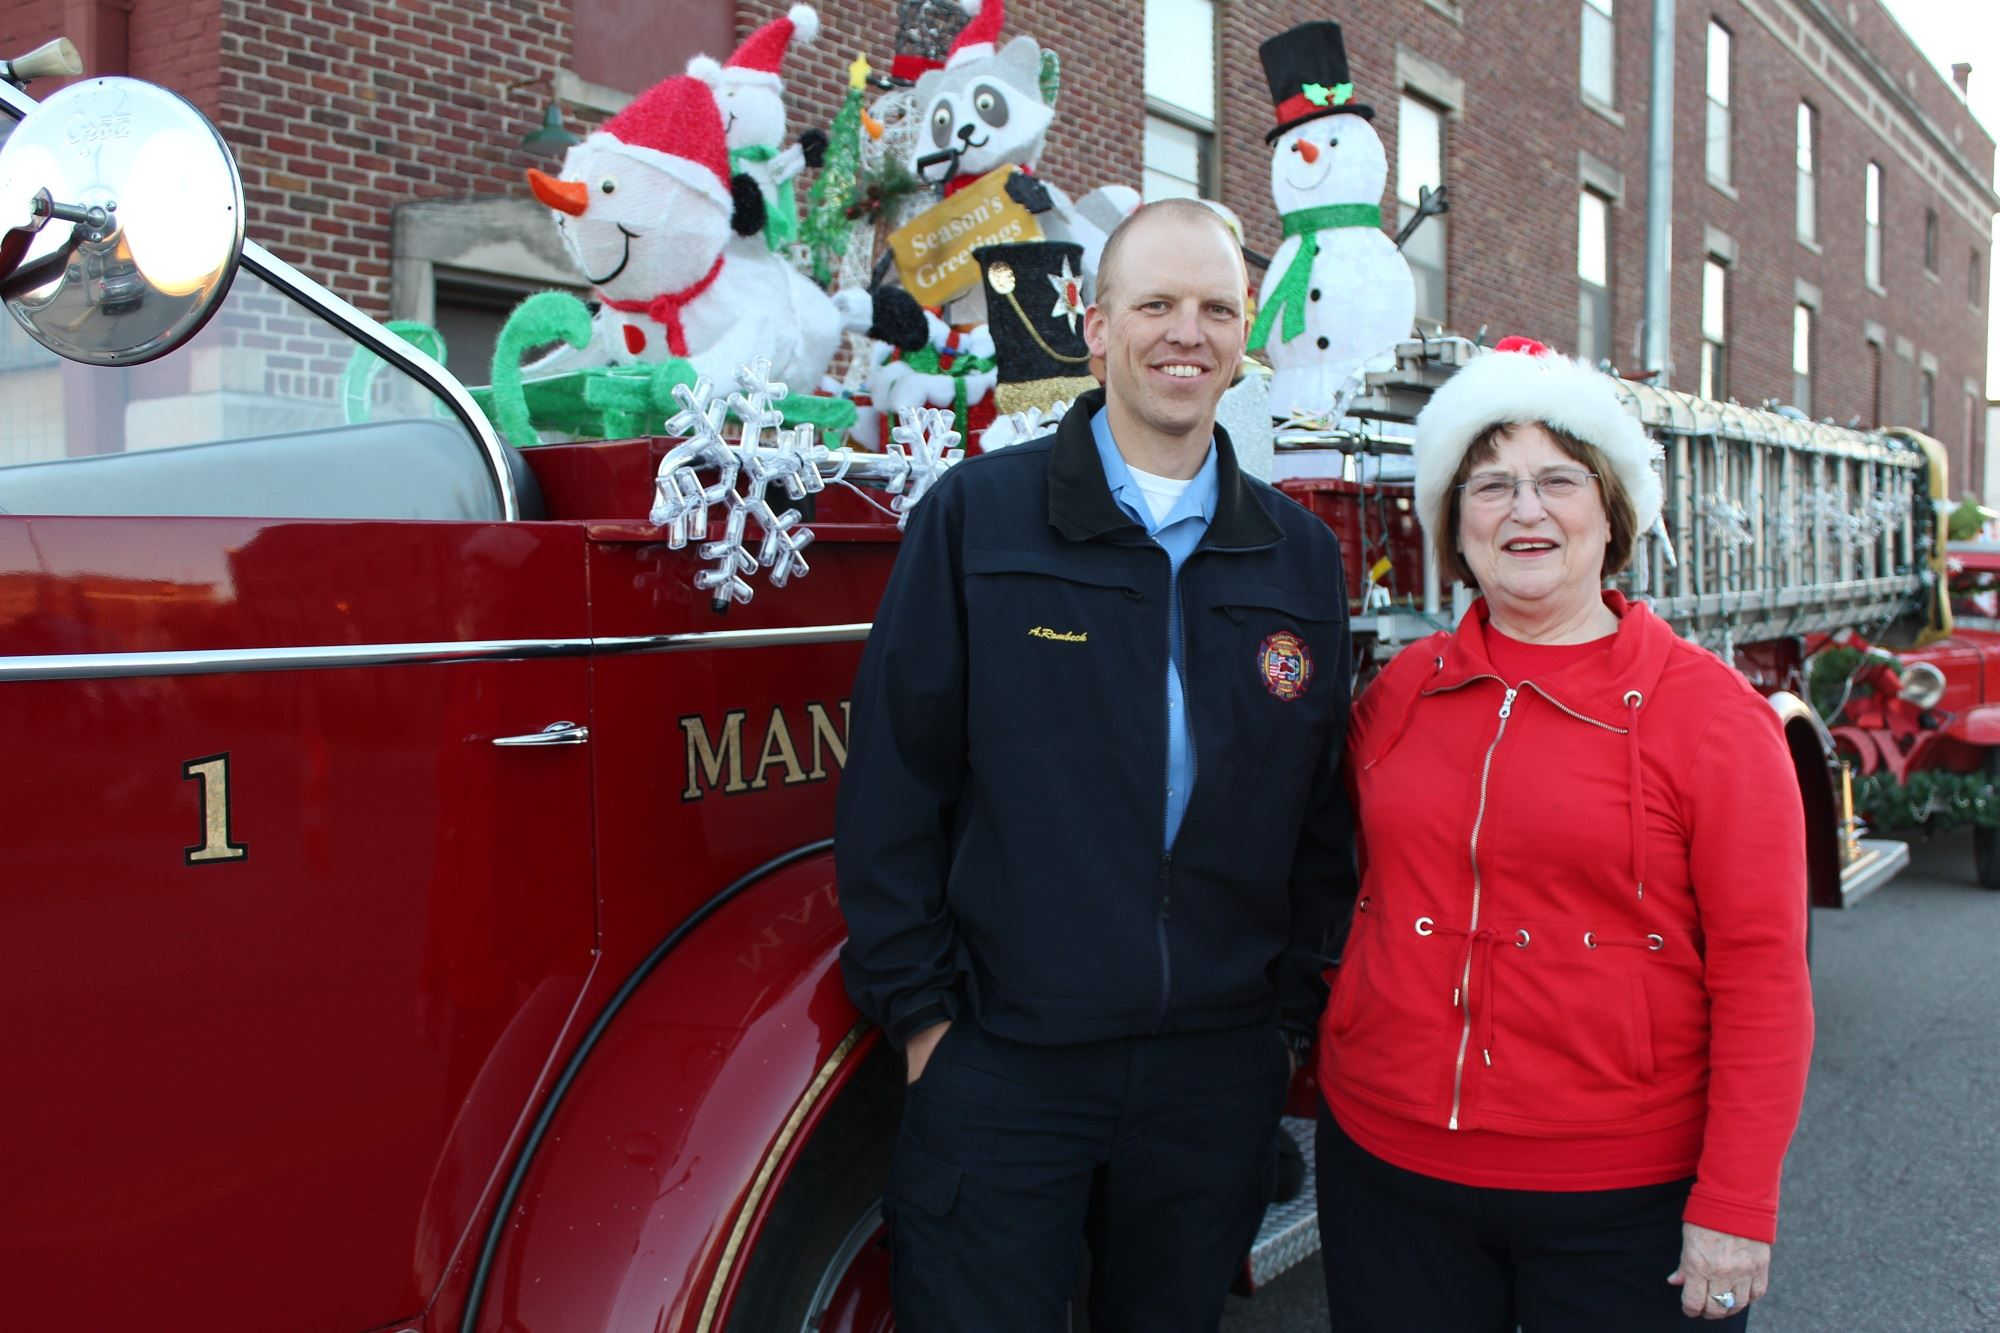 Mayor Morse and A. Rombeck posing in front of Old Fire Engine 1